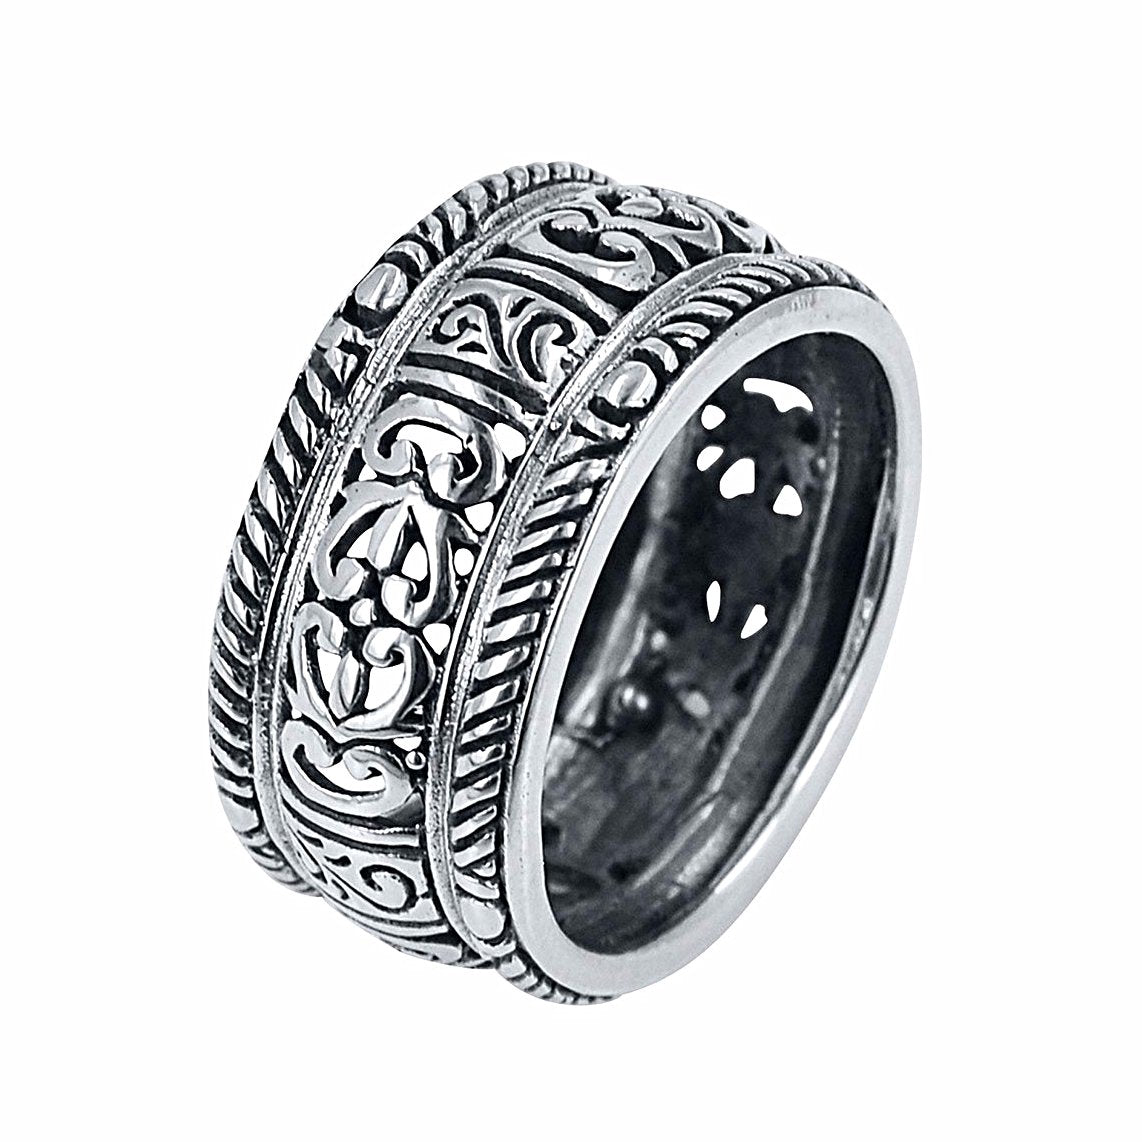 Scrollwork Carved Band Ring